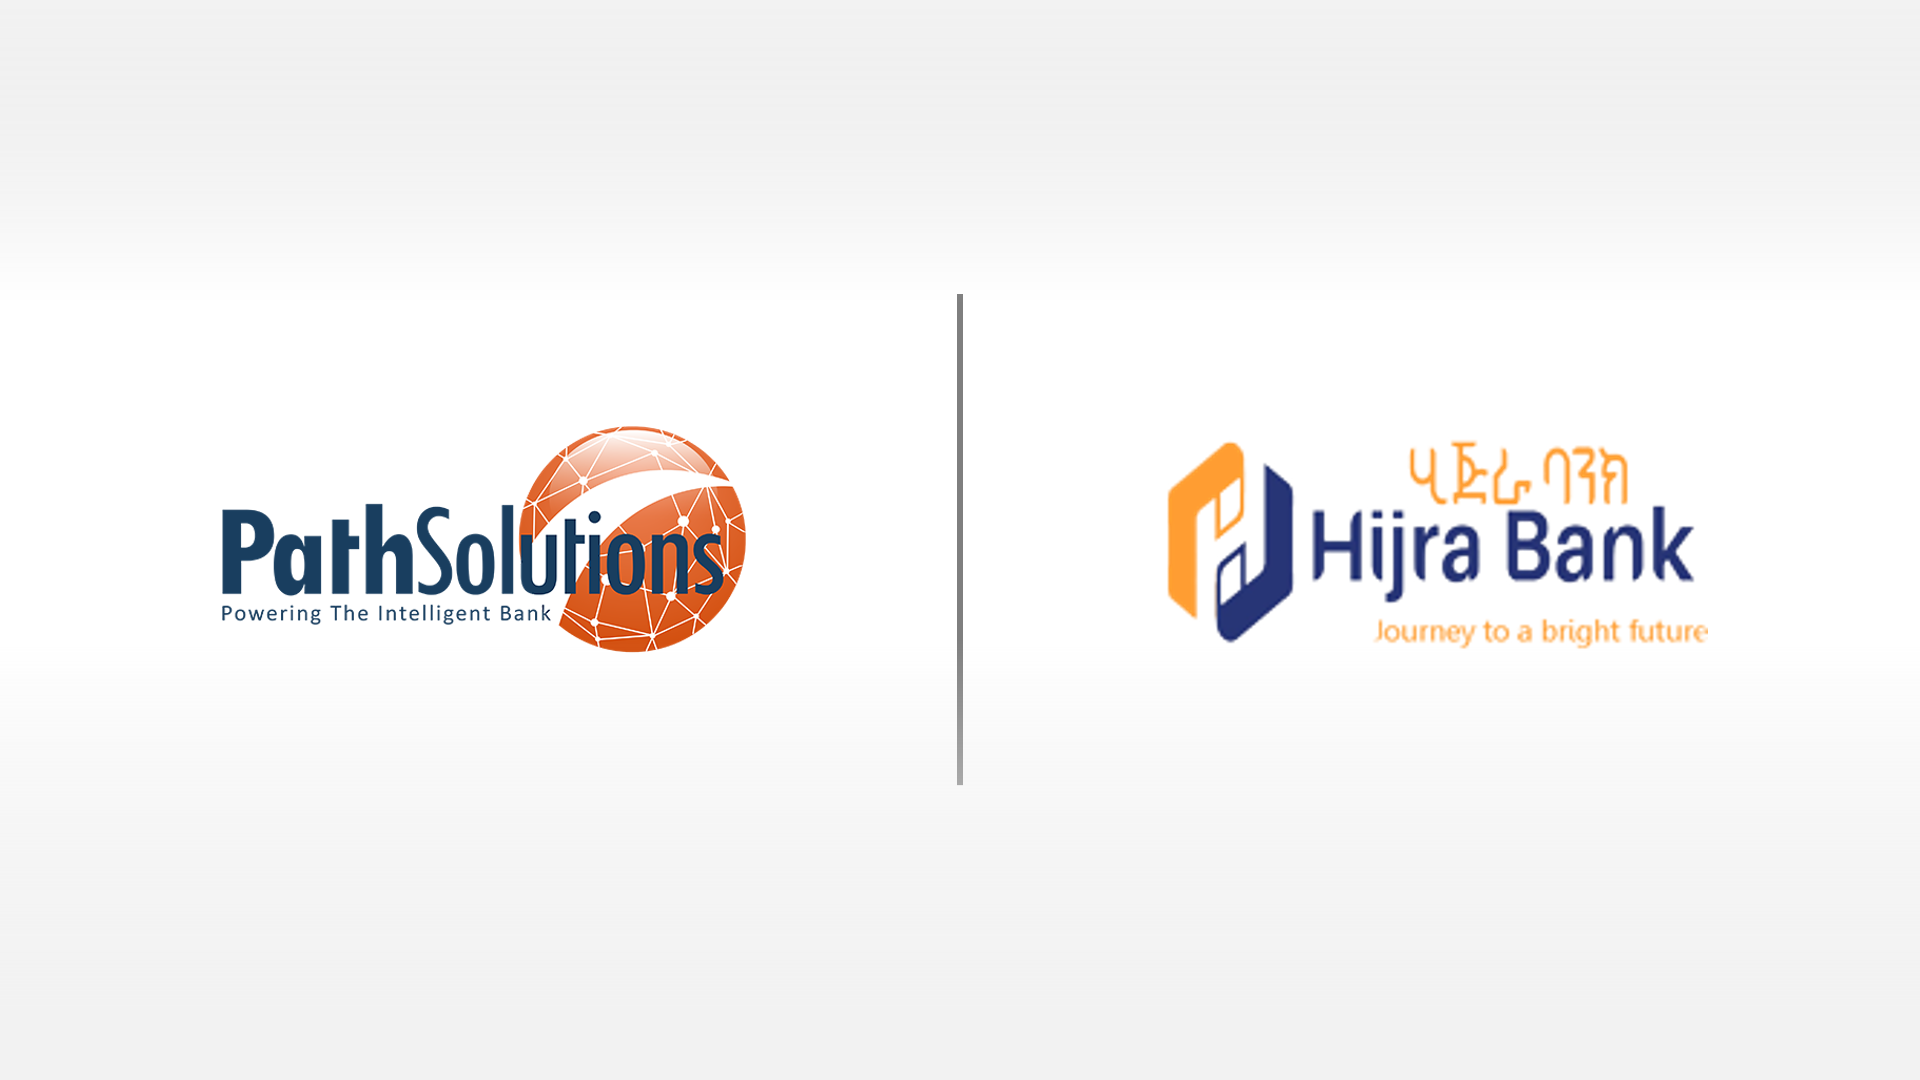 One of the Latest Banks to Join the Growing Islamic Banking Sector in Ethiopia, Hijra Bank Awards Core Banking Platform Contract to Software Giant Path Solutions